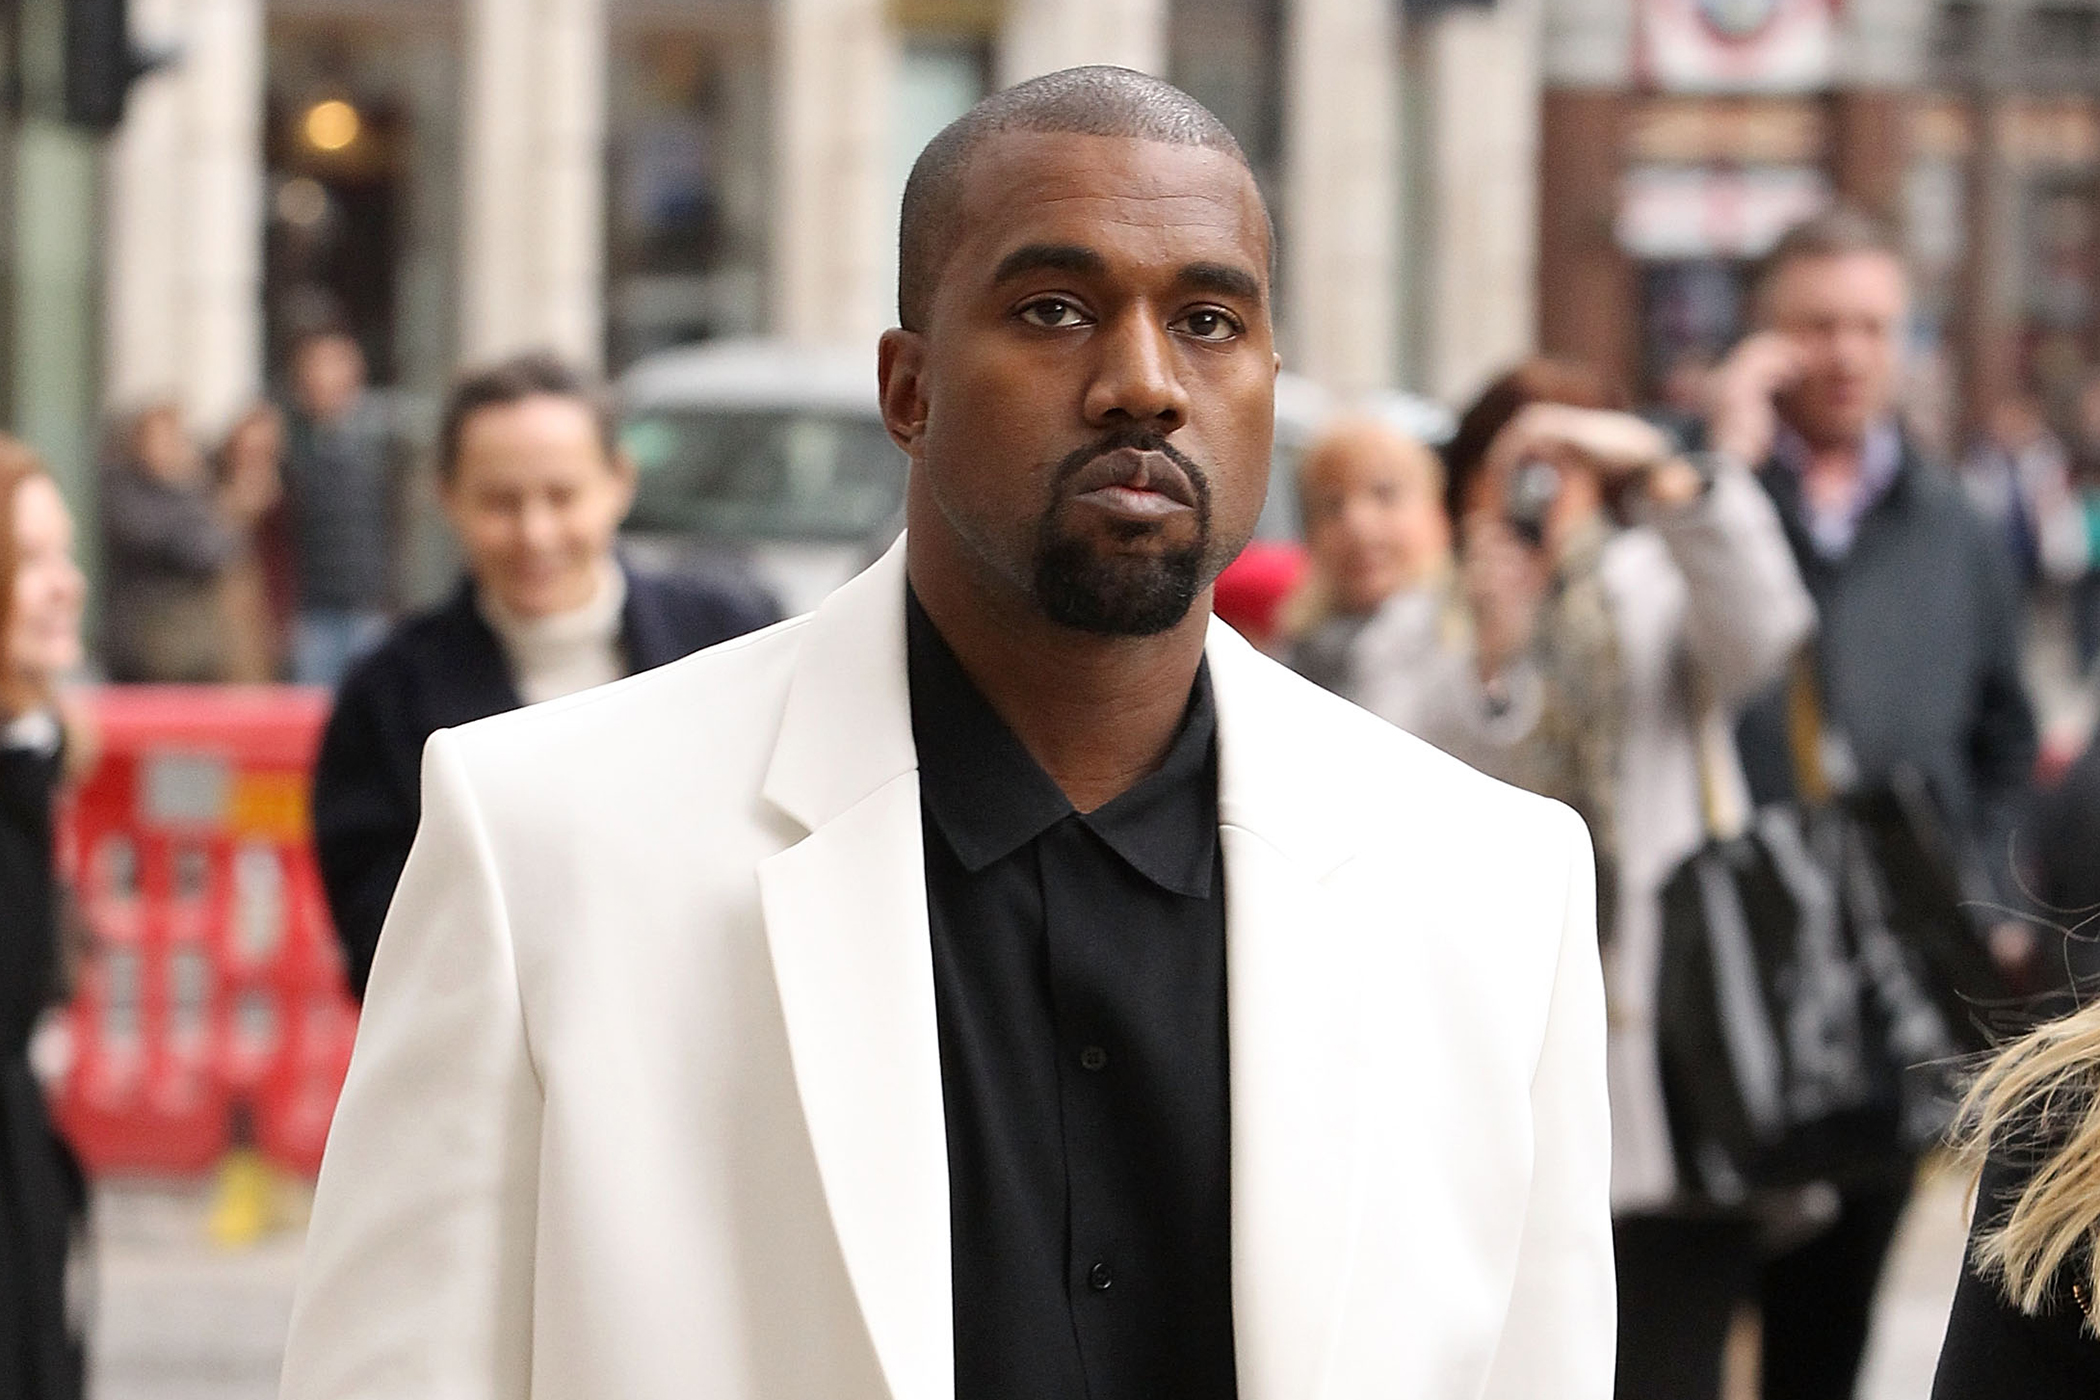 Kanye West during London Fashion Week Fall/Winter 2015/16 on February 20, 2015 in London, England.